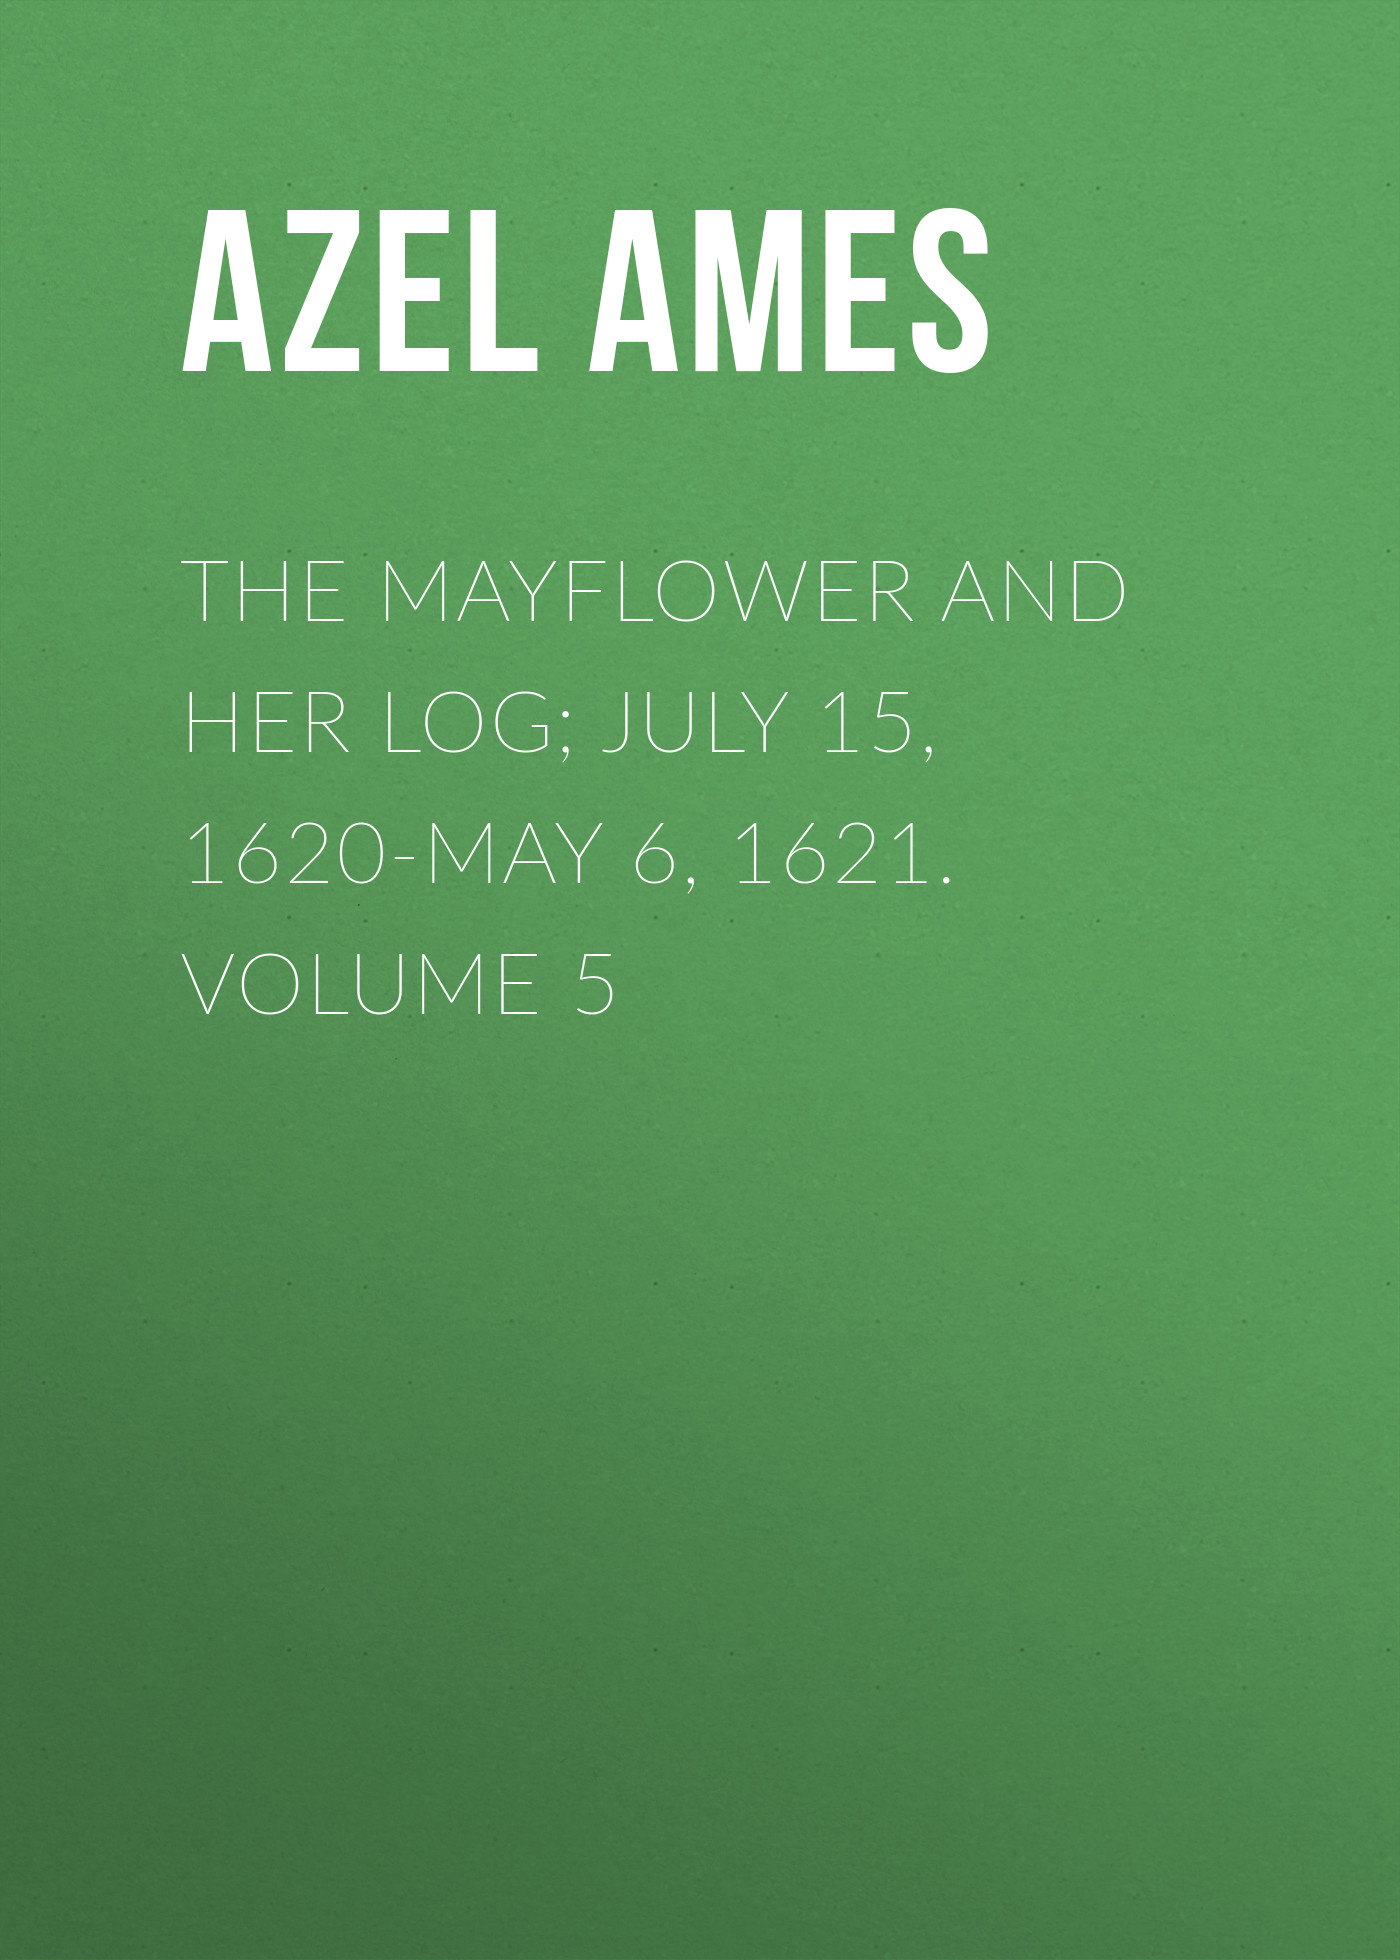 Azel Ames The Mayflower and Her Log; July 15, 1620-May 6, 1621. Volume 5 ardsley ames encounter the poet